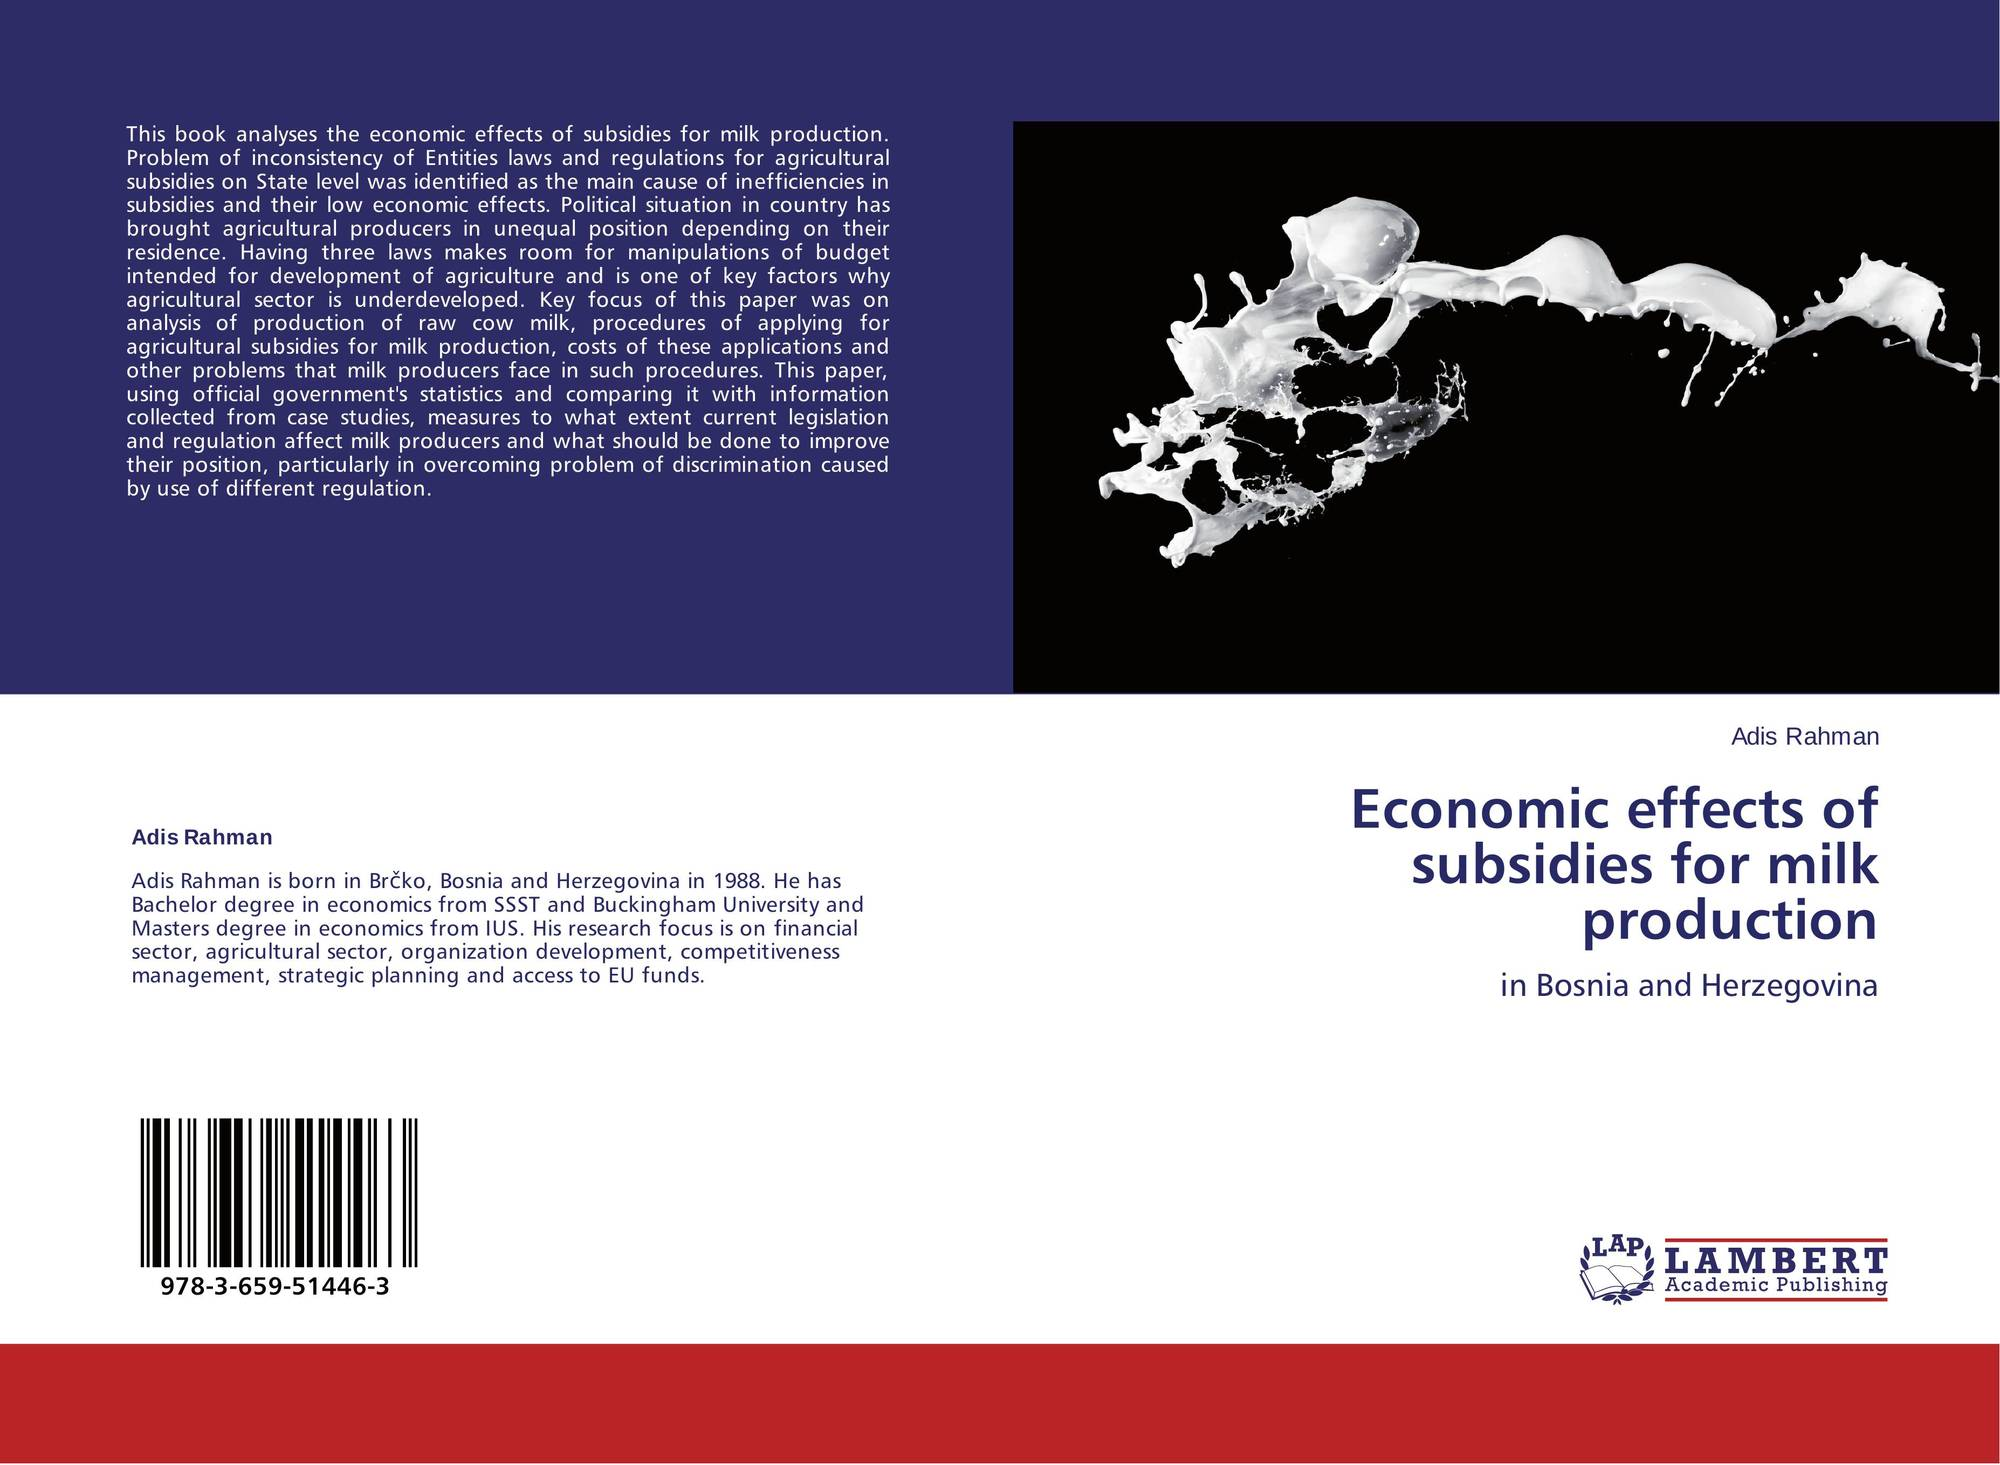 the effects of regulated premium subsidies The acreage e ects of premium subsidies in us crop insurance job market paper working draft - preliminary and incomplete jisang yu.